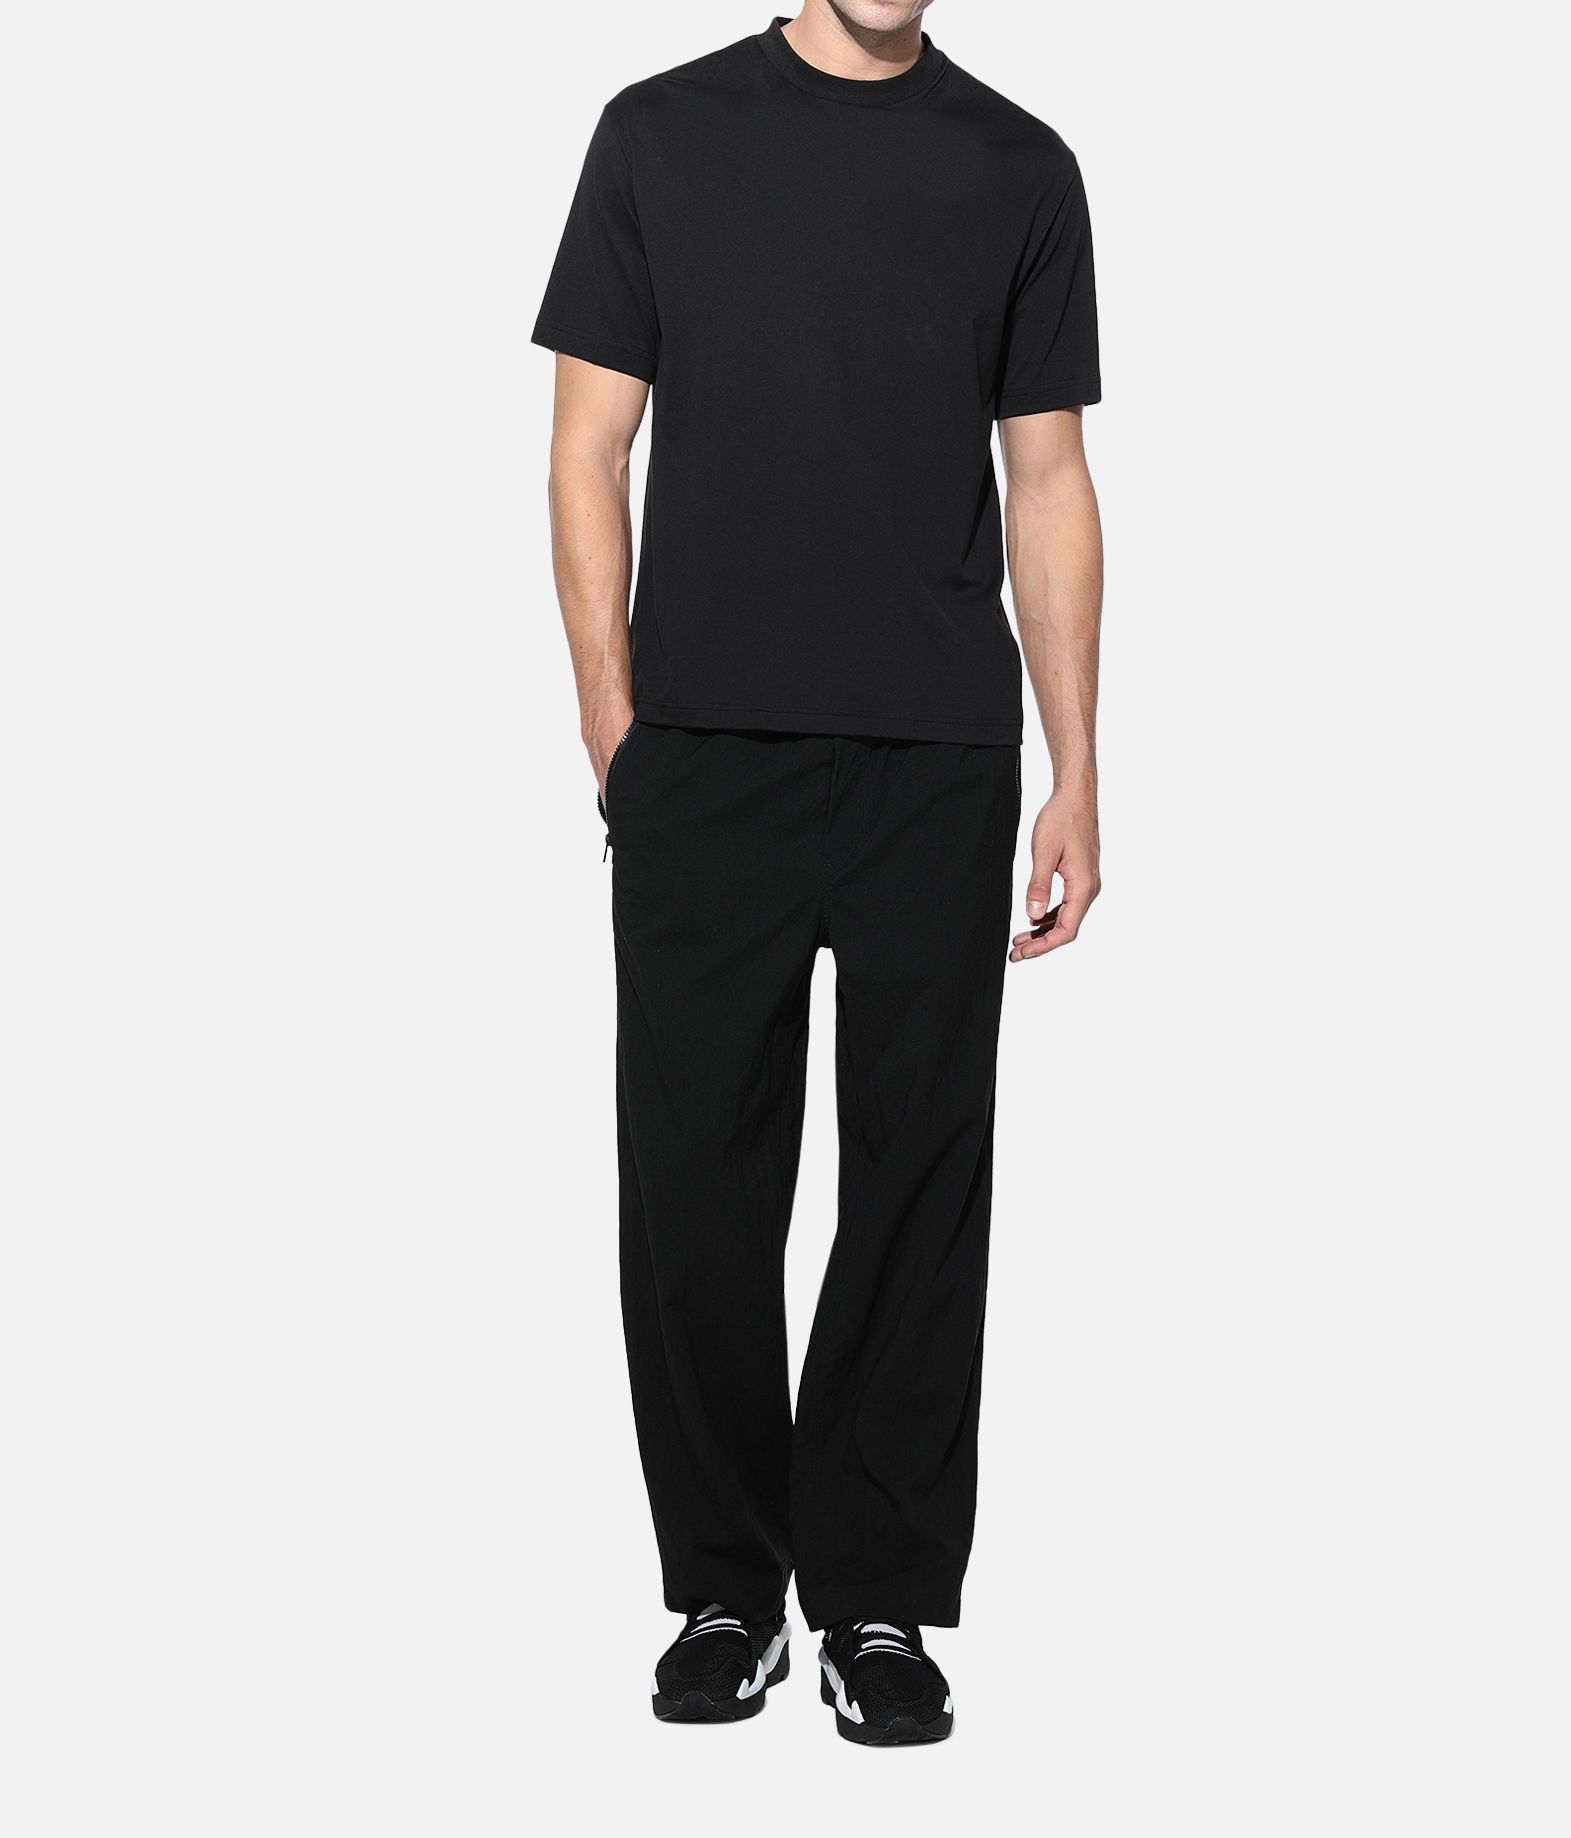 Y-3 Y-3 Signature Graphic Tee Kurzärmliges T-shirt Herren a